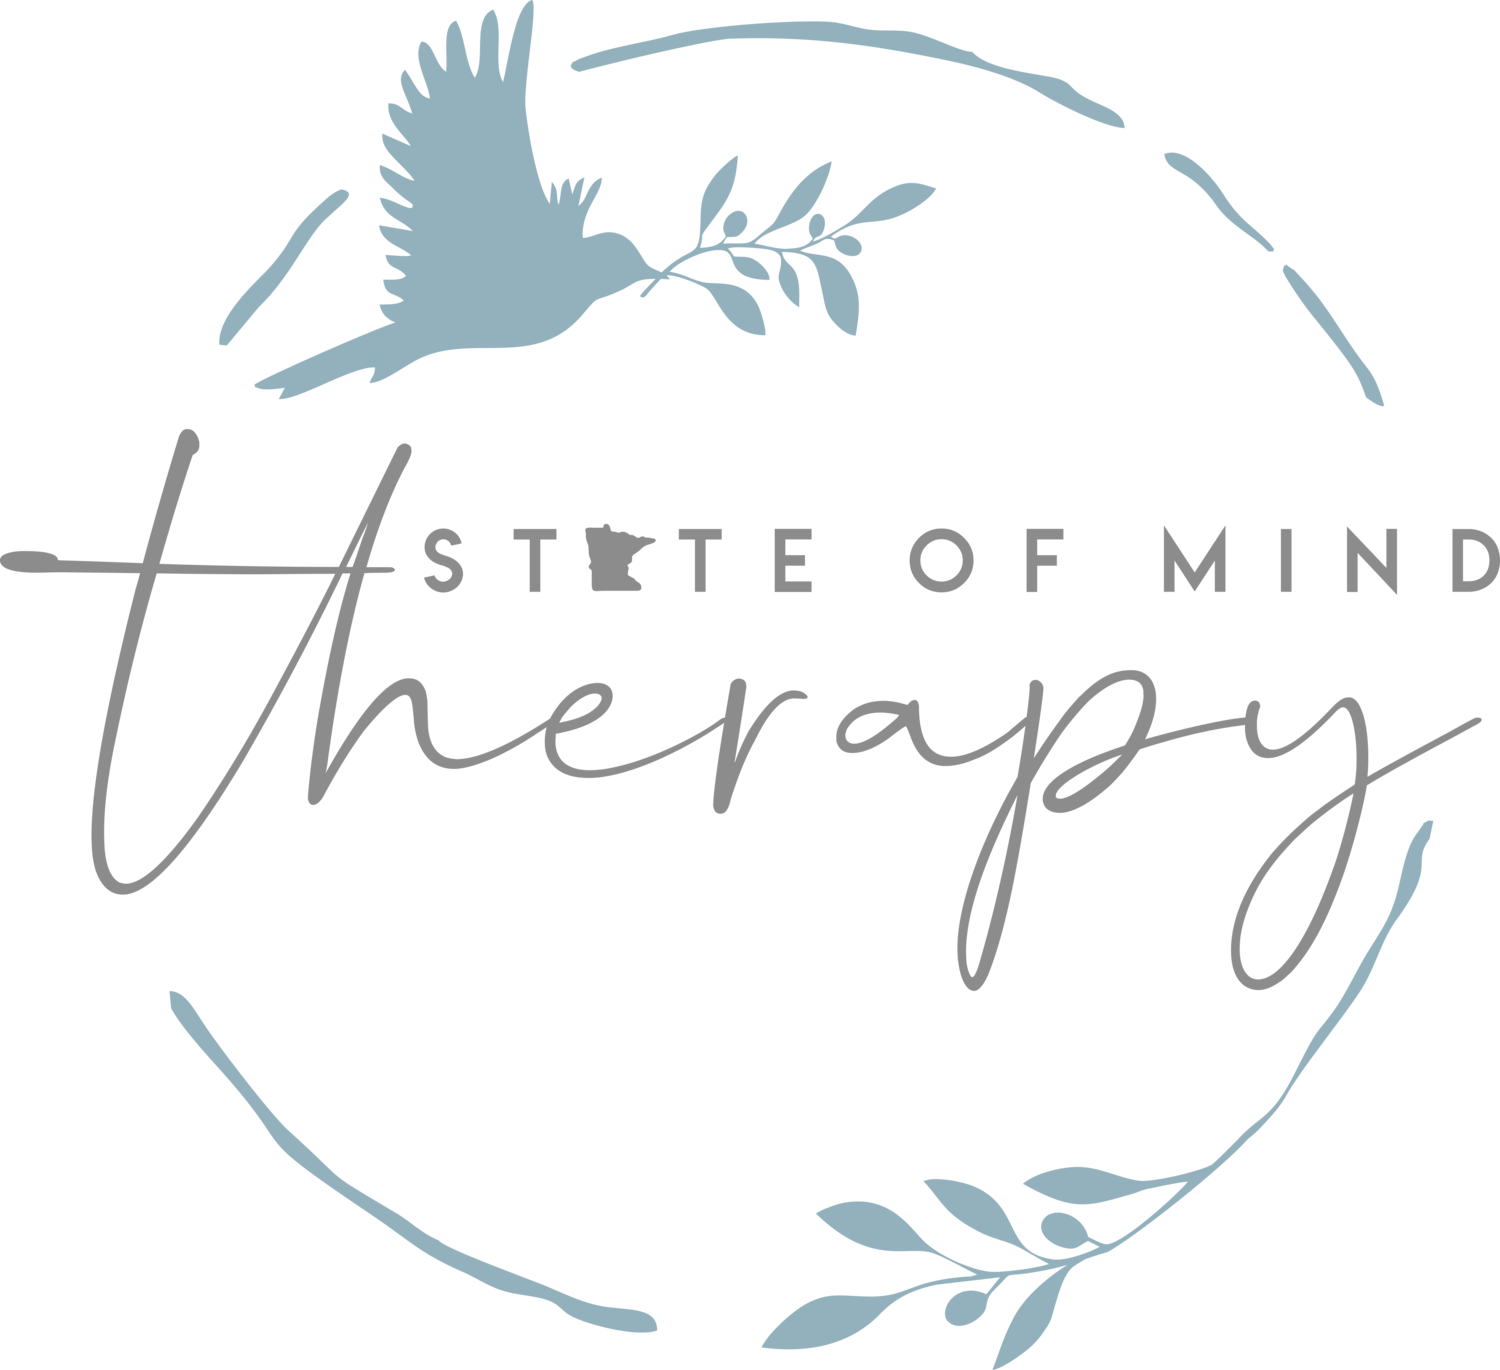 CBT Therapist For Anxiety And OCD